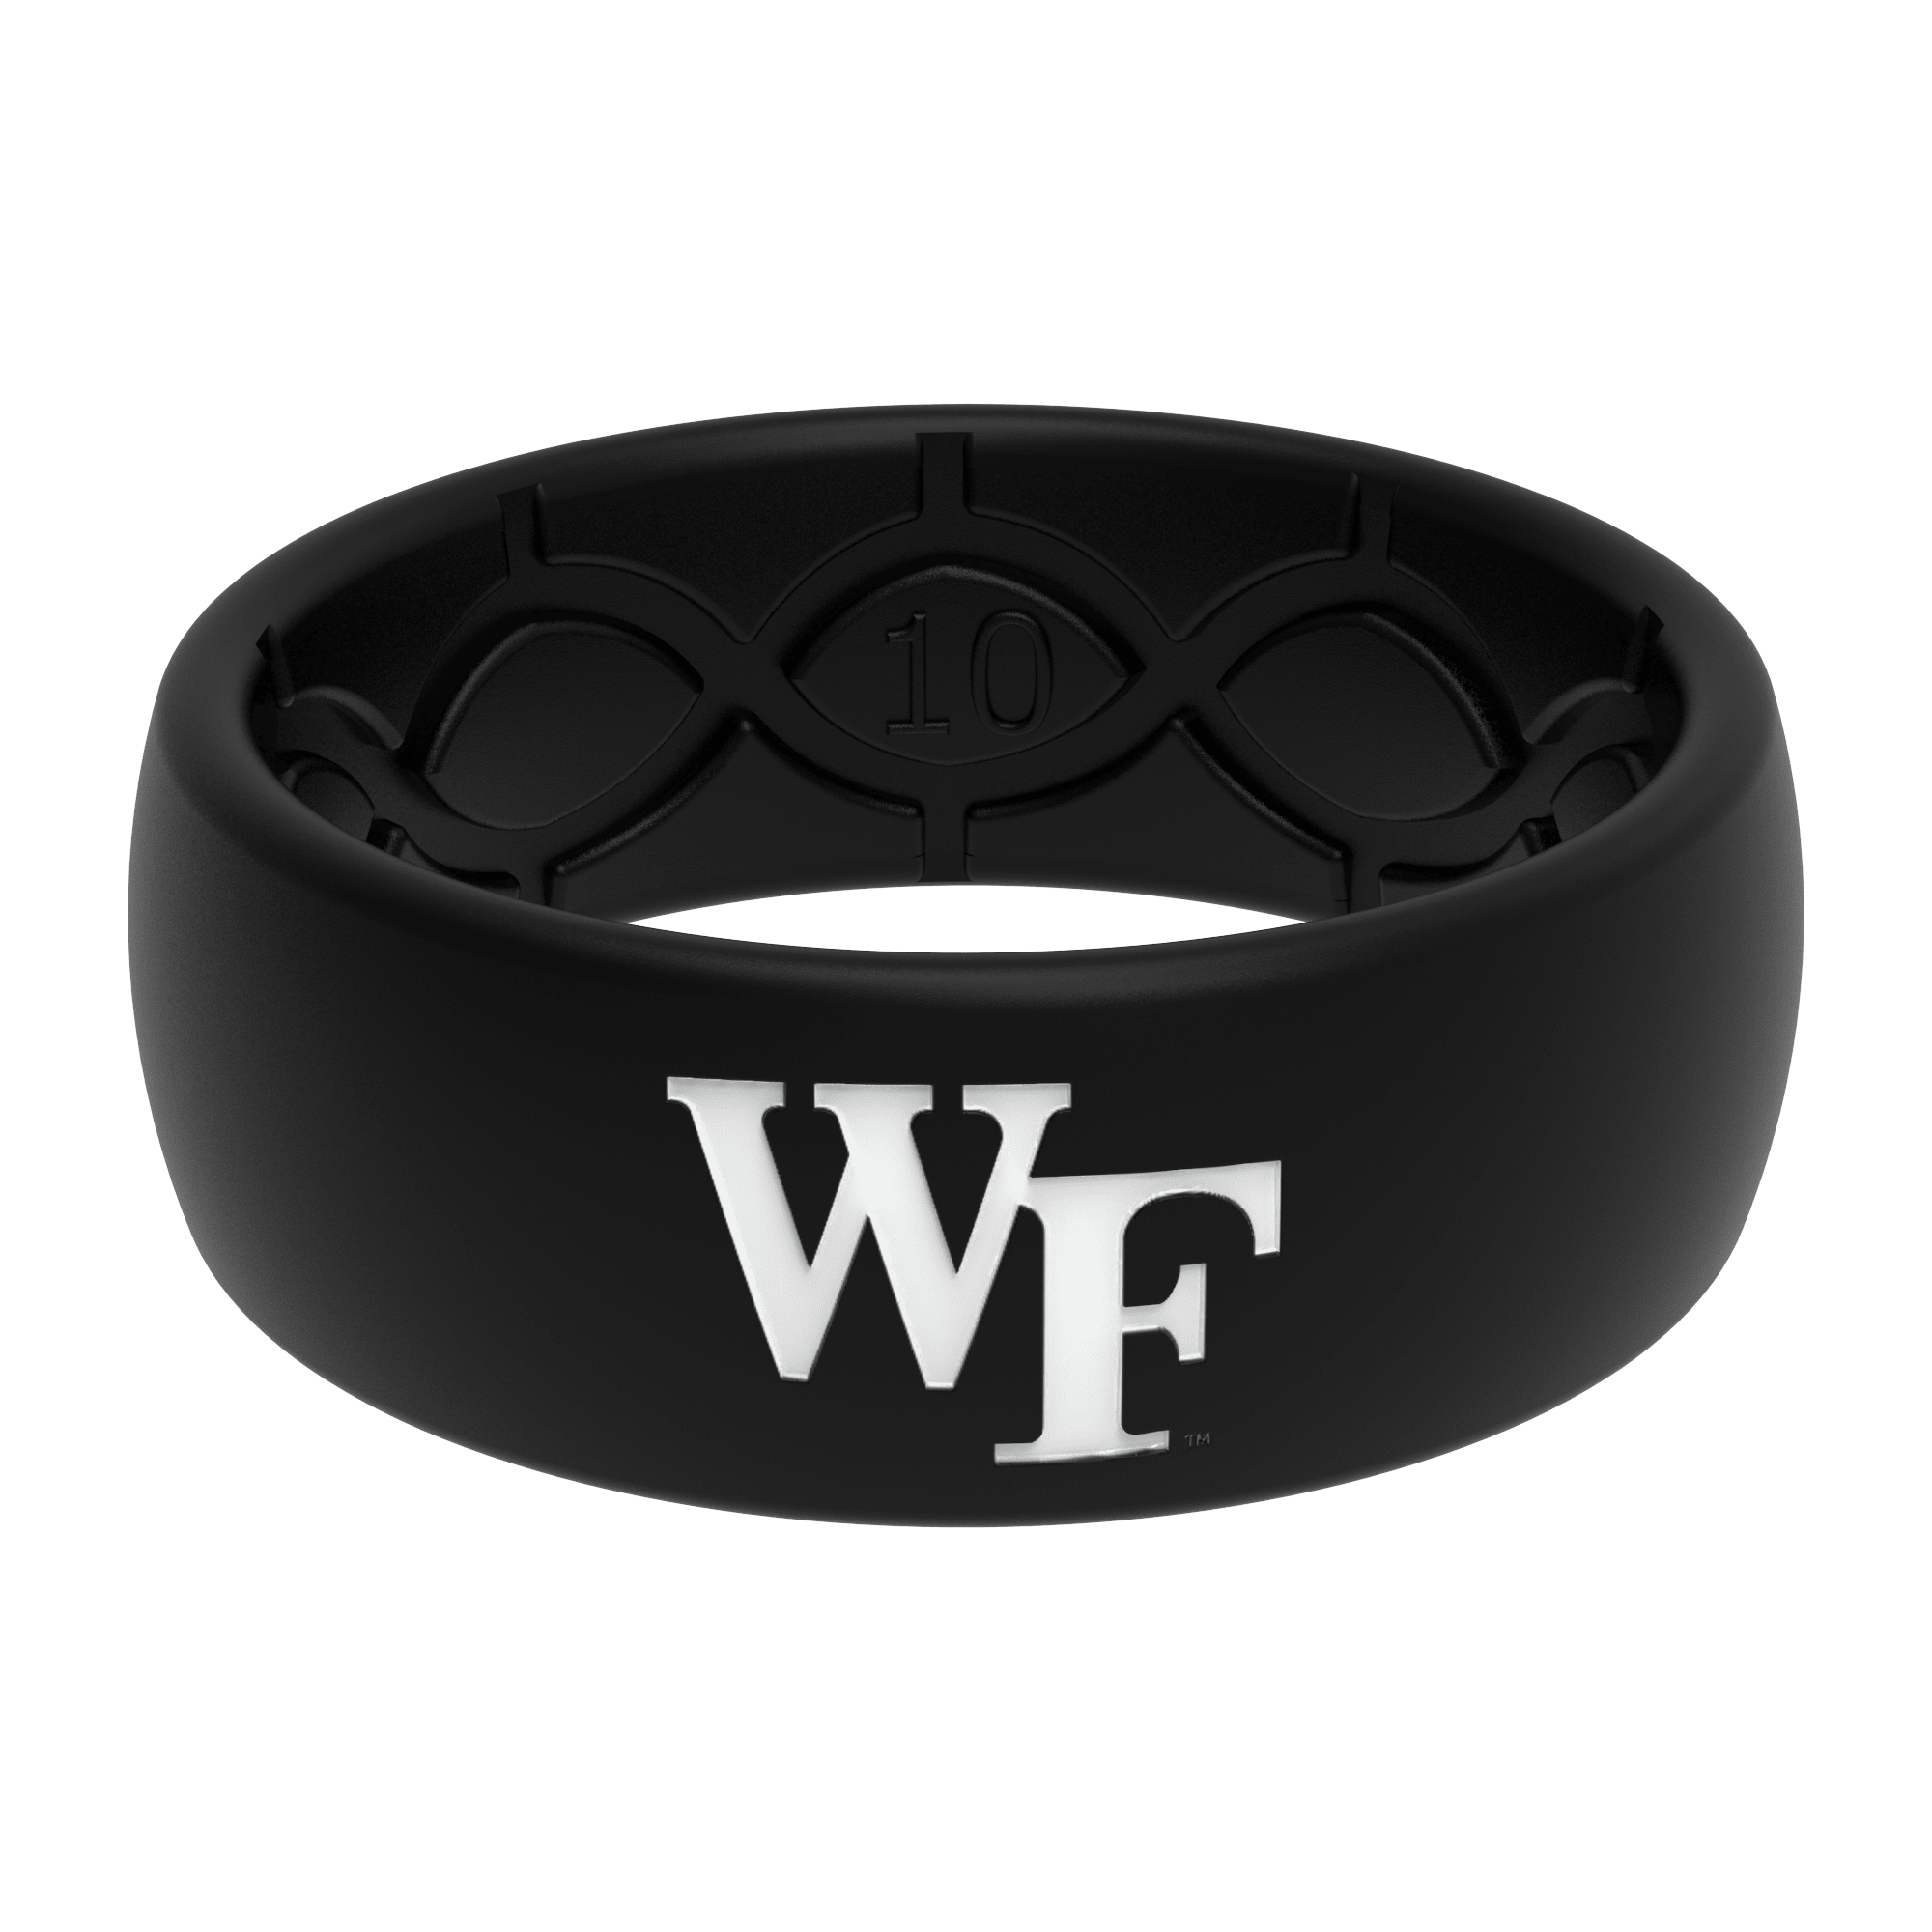 Original College Wake Forest viewed front on